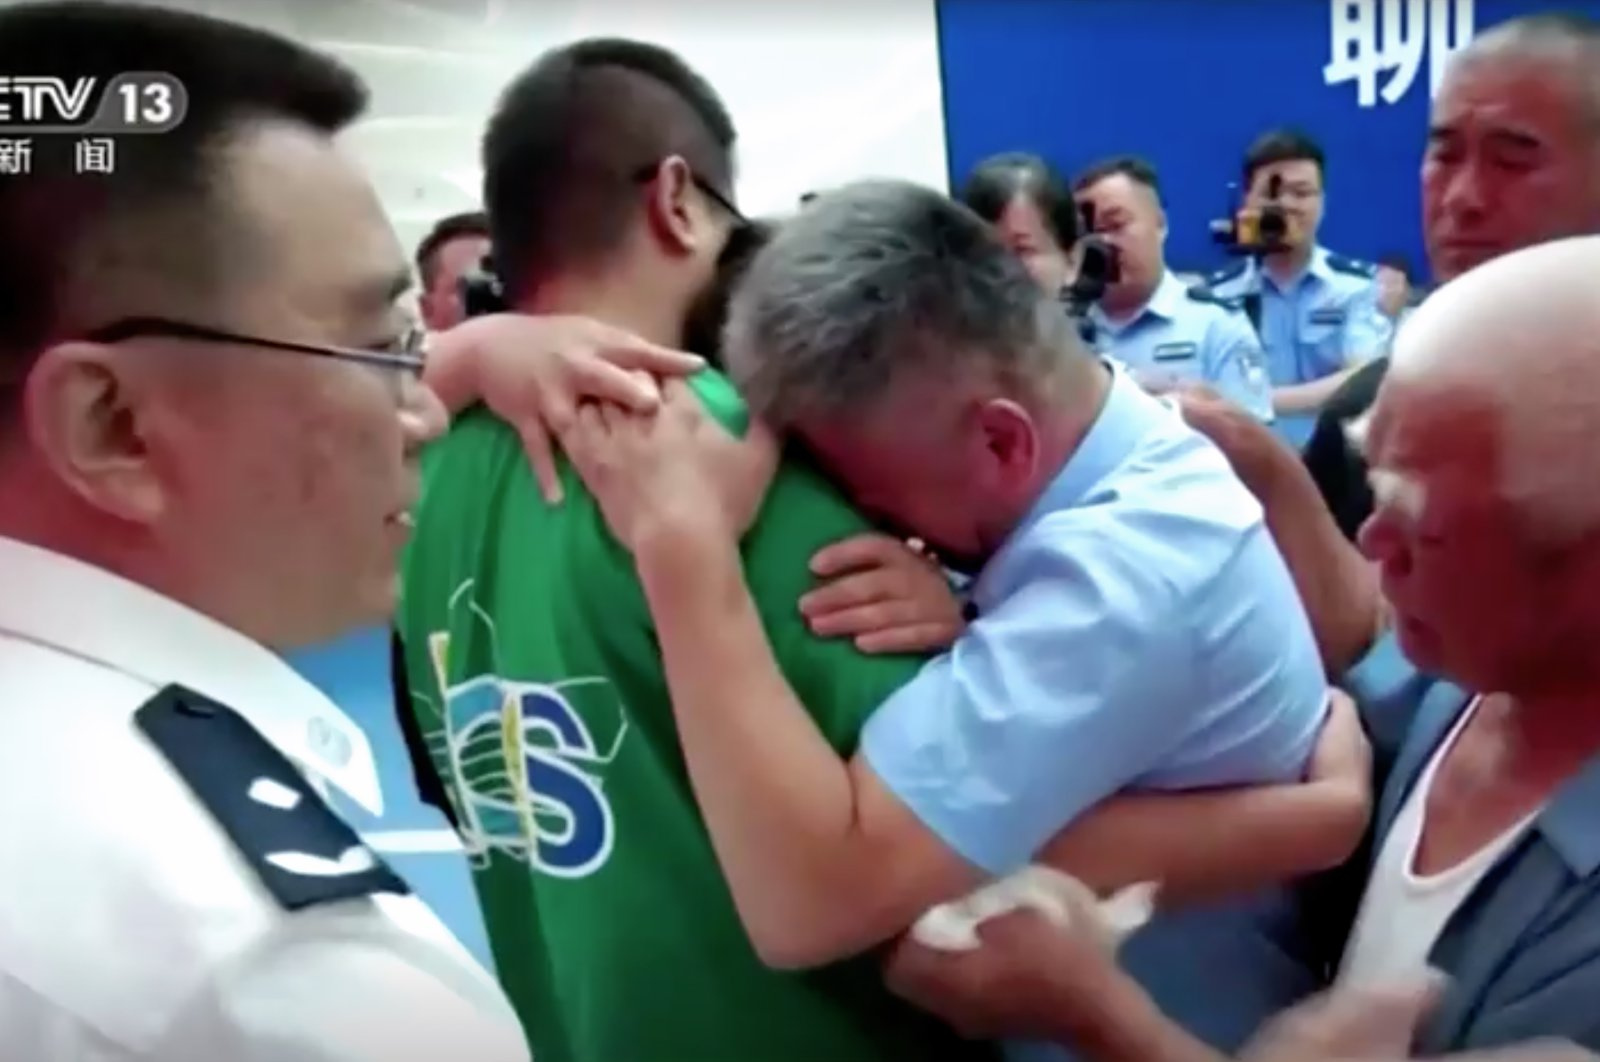 Guo Gangtang hugs his son, who was abducted when he was just two years and five months old. (Screenshot/CCTV via Reuters)